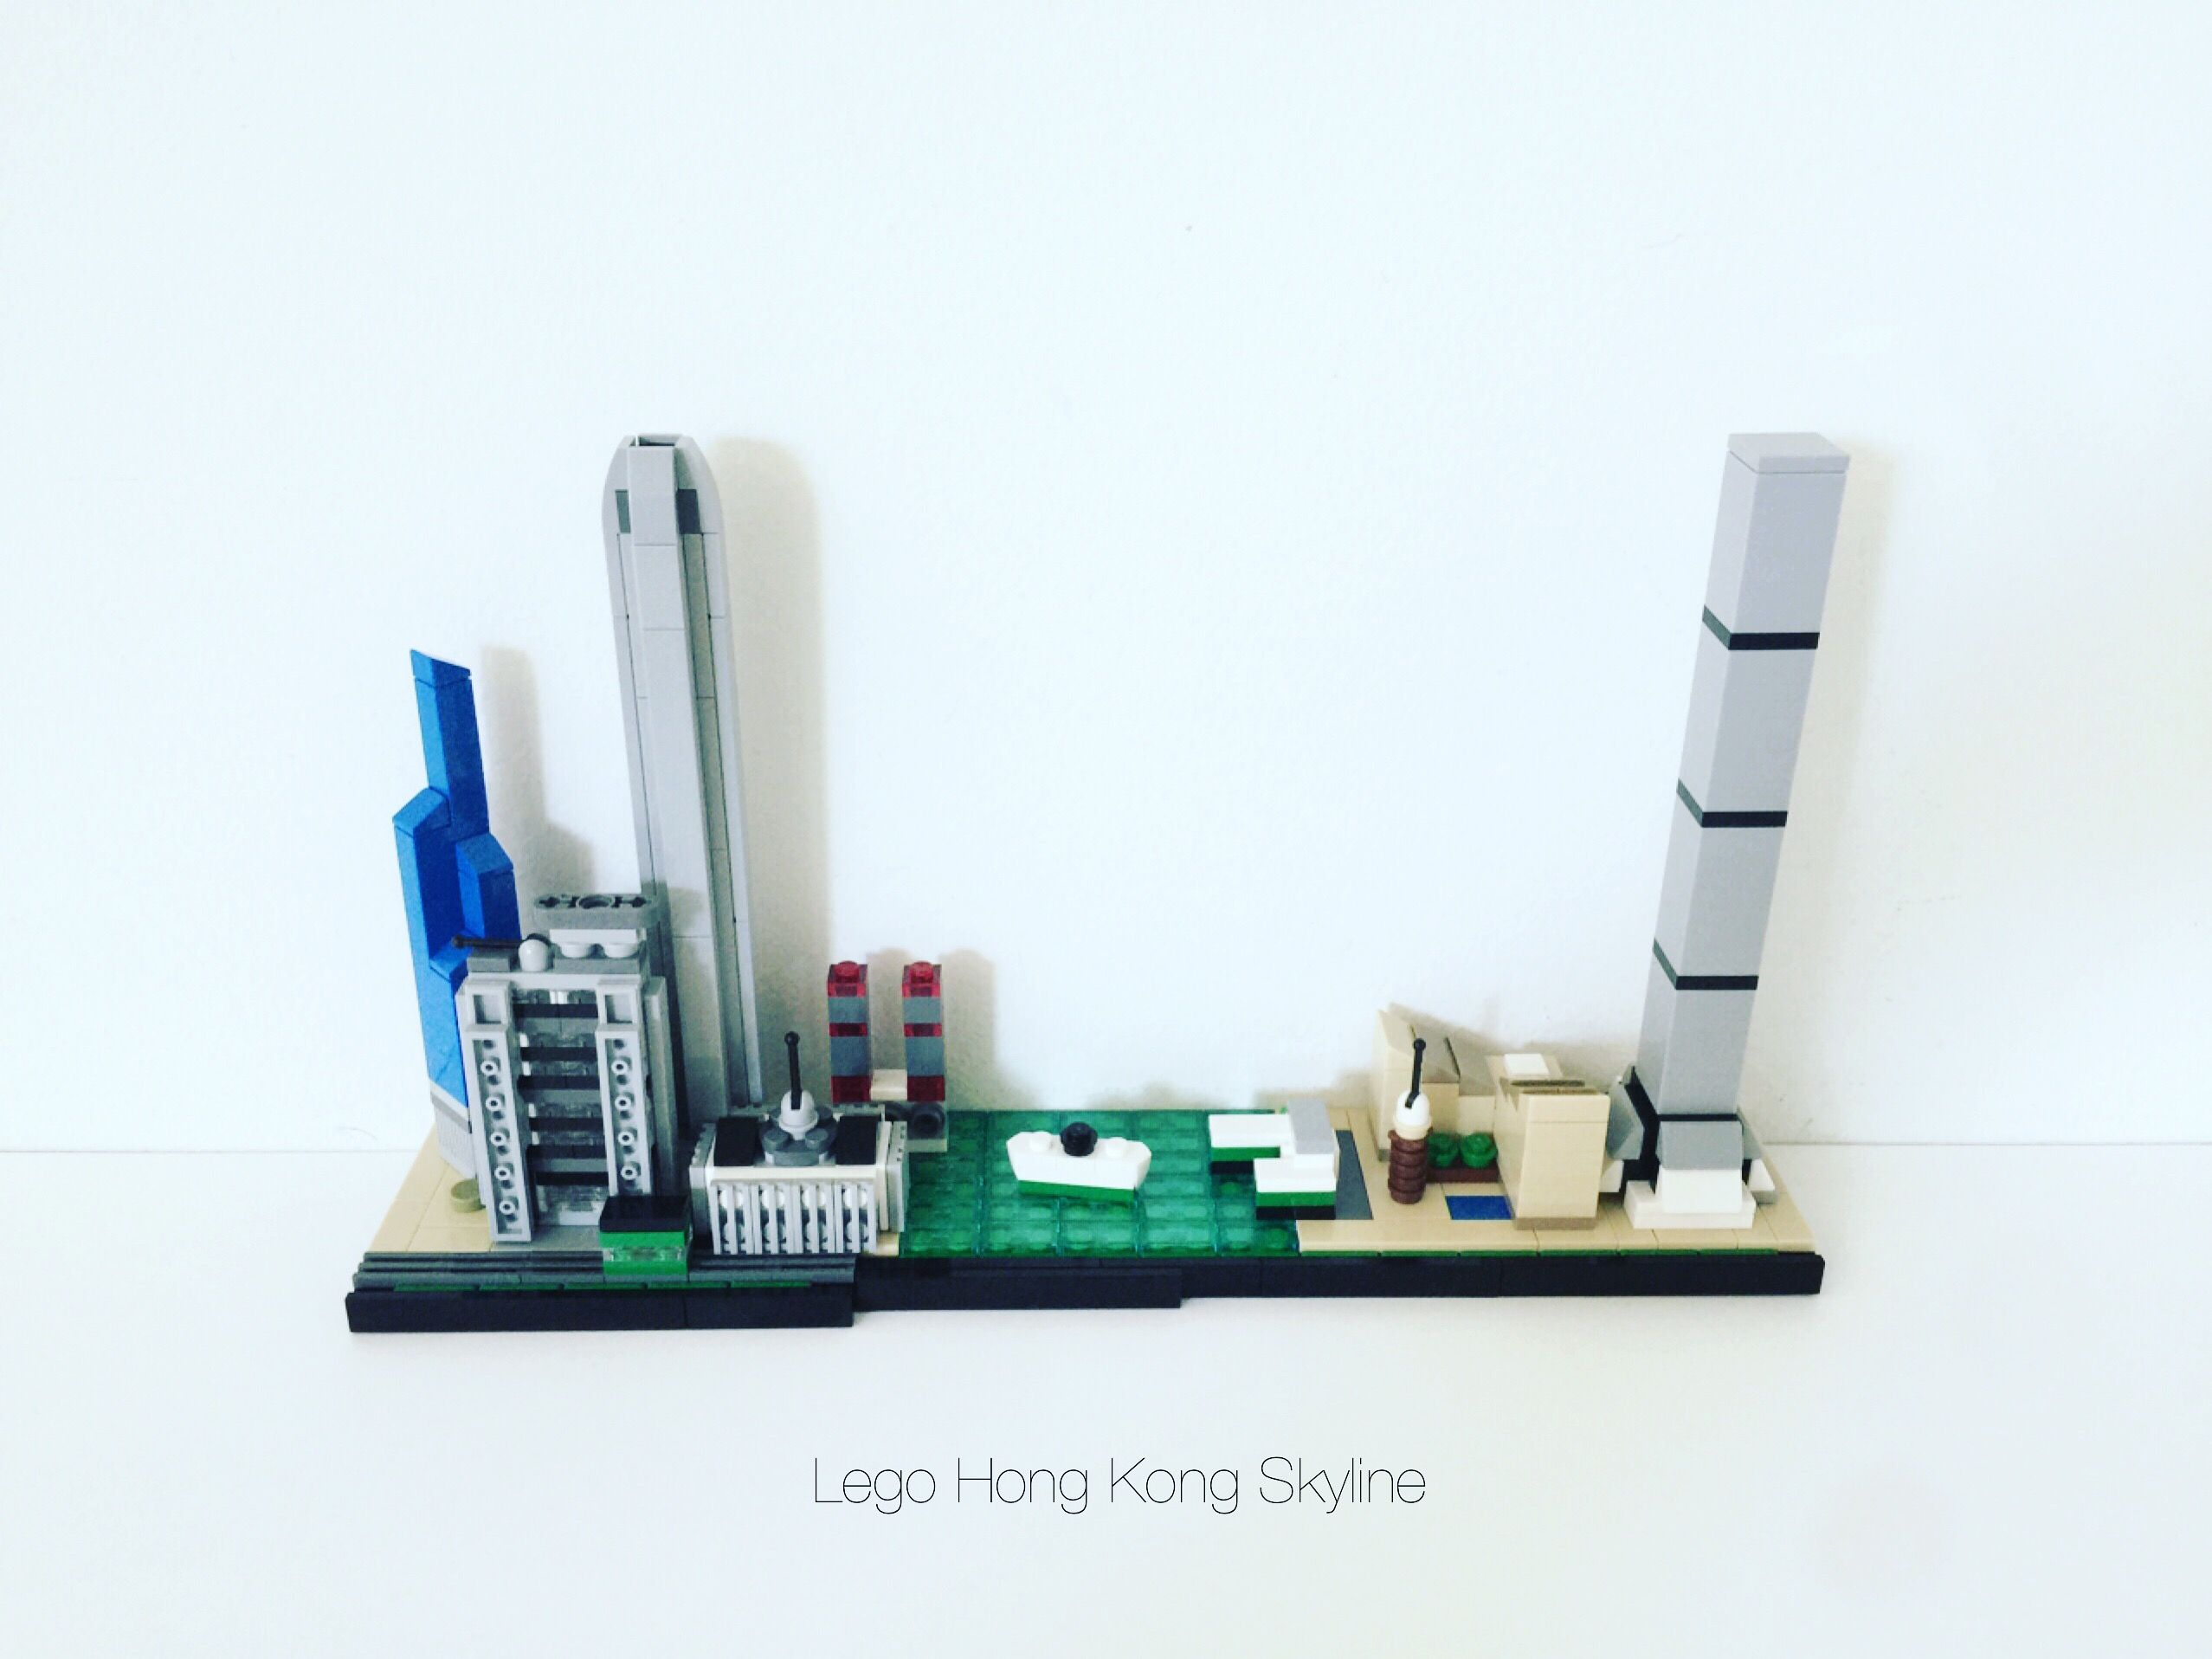 lego moc hong kong skyline lego architecture moc pinterest lego moc lego and lego. Black Bedroom Furniture Sets. Home Design Ideas